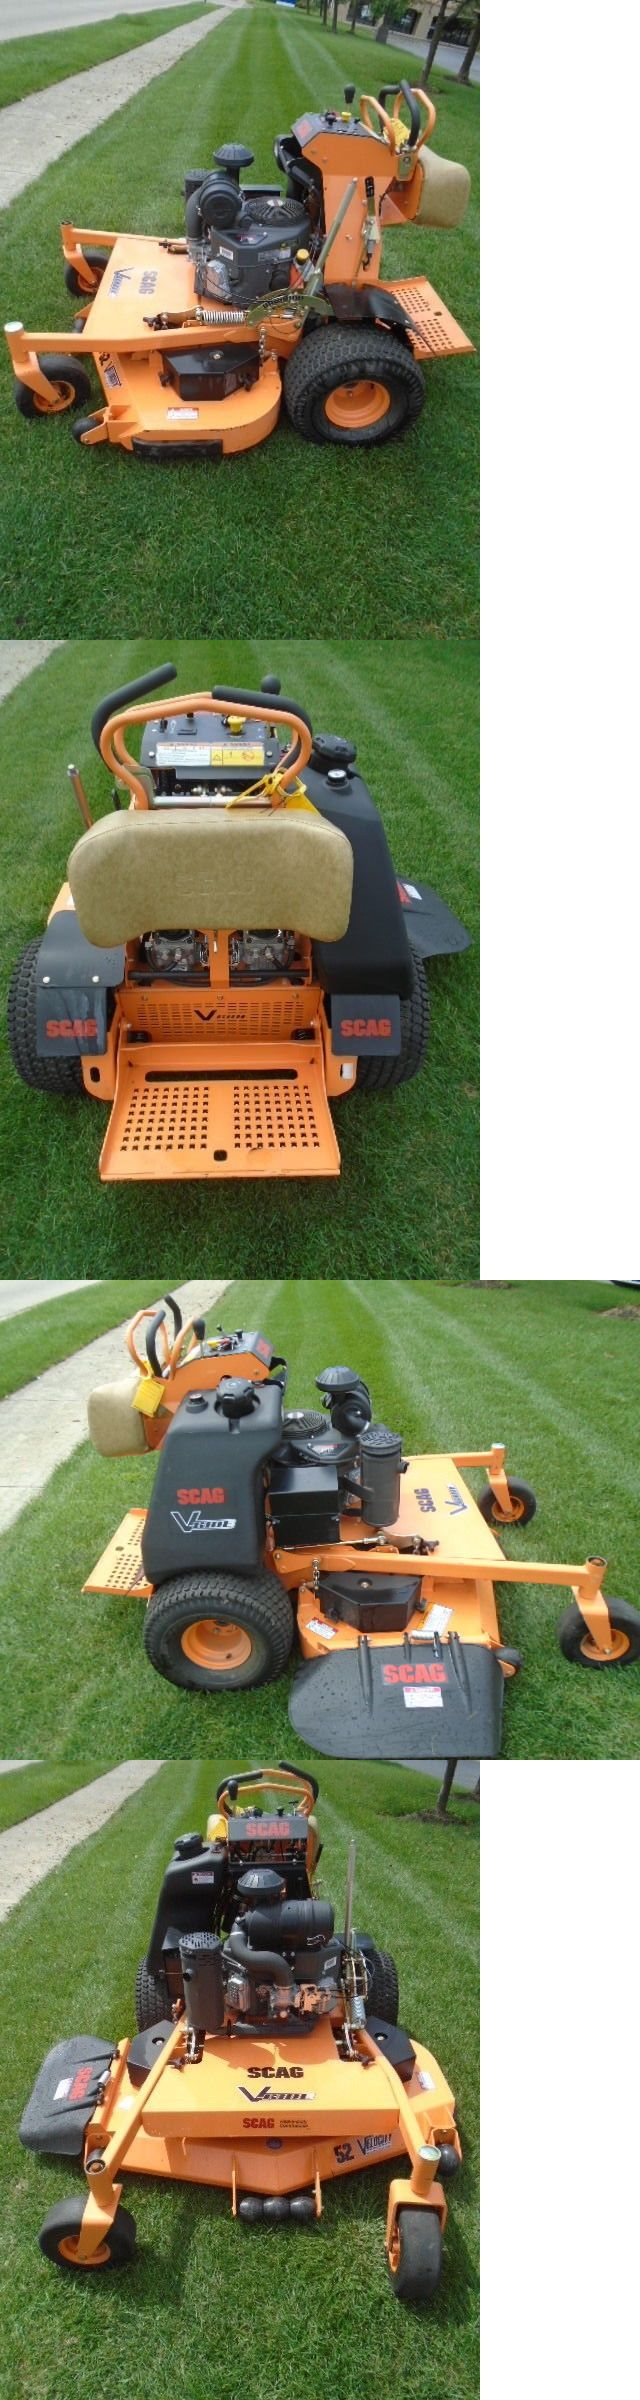 Riding Mowers 177021: 2017 Scag V-Ride Demo 52 Commercial Stand On 23Hp Kaw Eng 29 Hours H#144928 -> BUY IT NOW ONLY: $7195 on eBay!